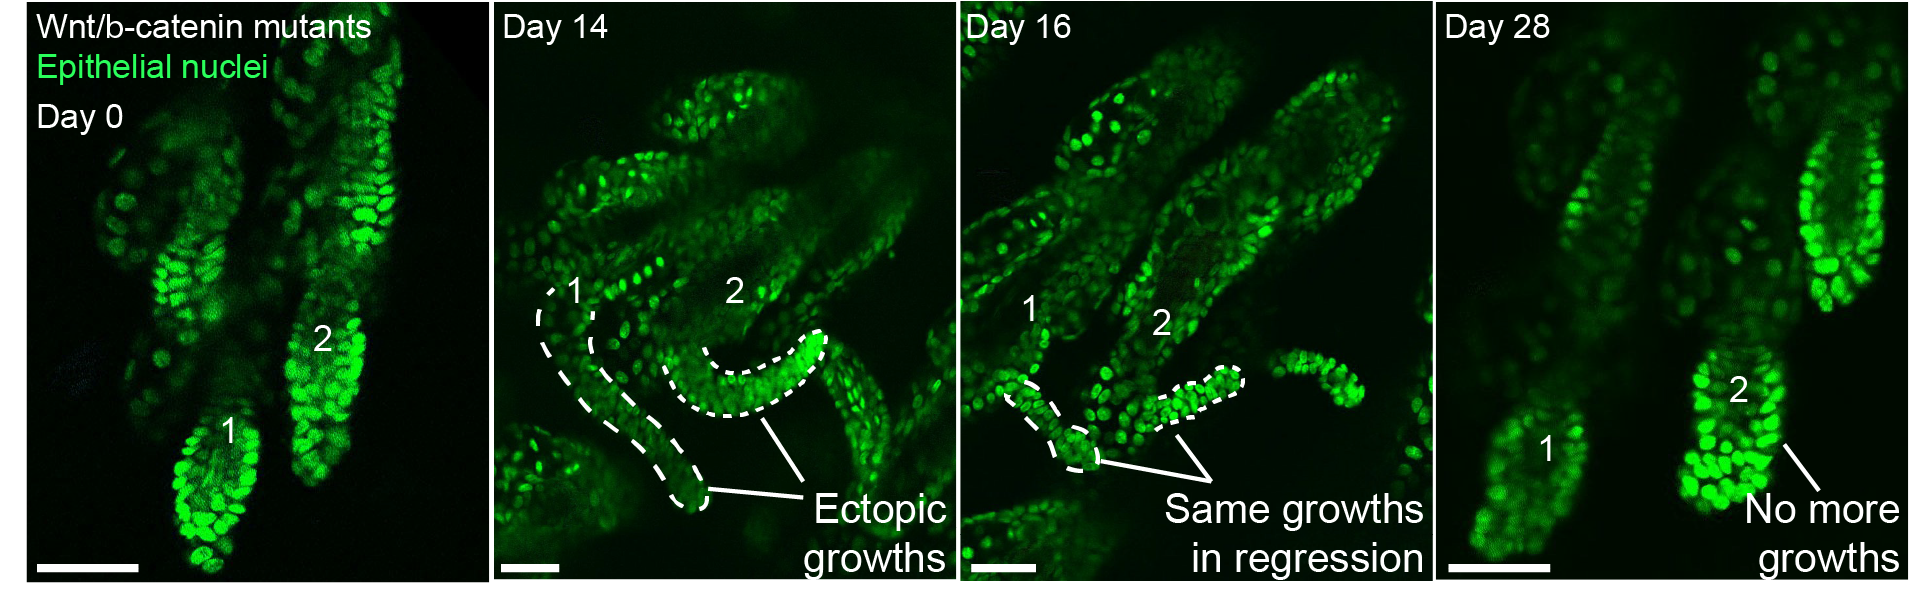 Figure 1. Cells carrying Wnt/b-catenin mutations can drive aberrant growths. Surprisingly, these growths are eliminated from the tissue and do not re-emerge over time.